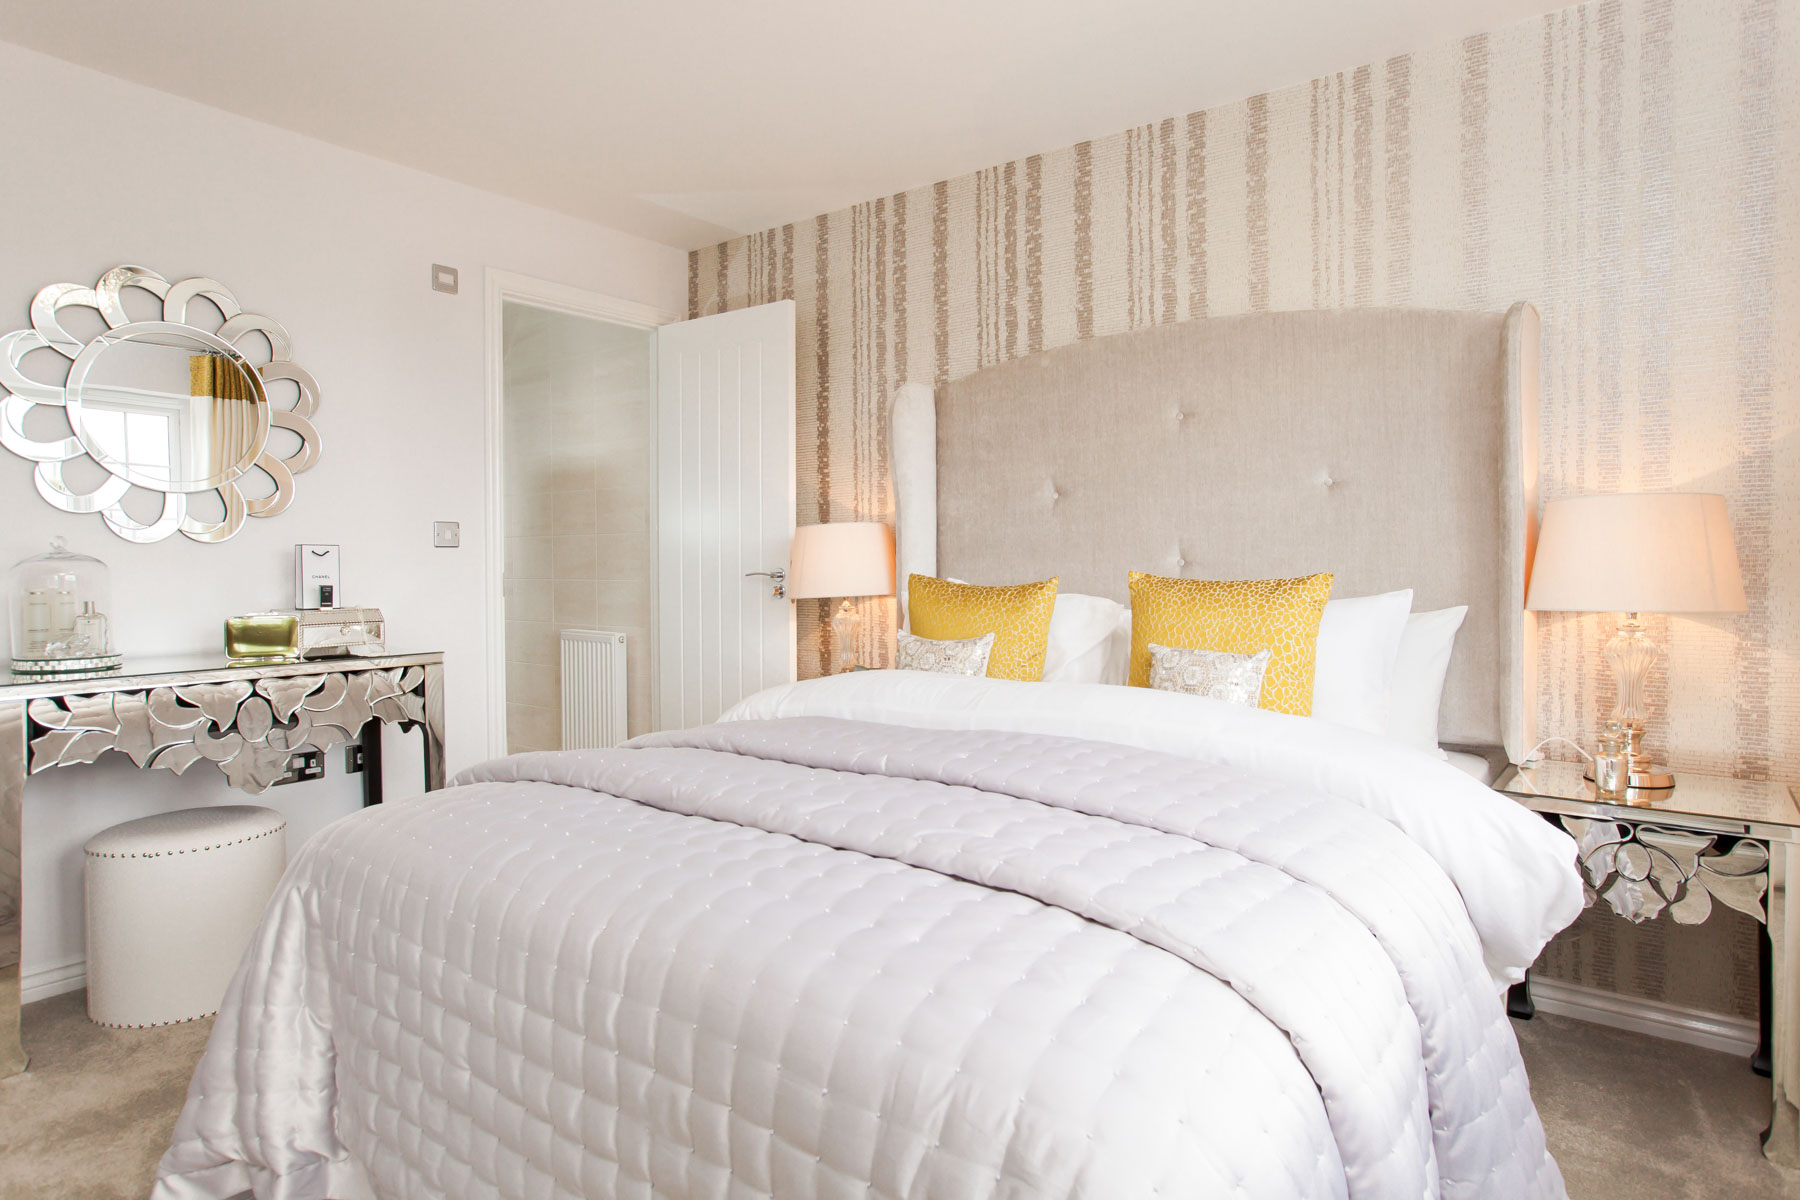 TW Yorkshire_The_Wickets_PA44_Midford_Bedroom_1_2